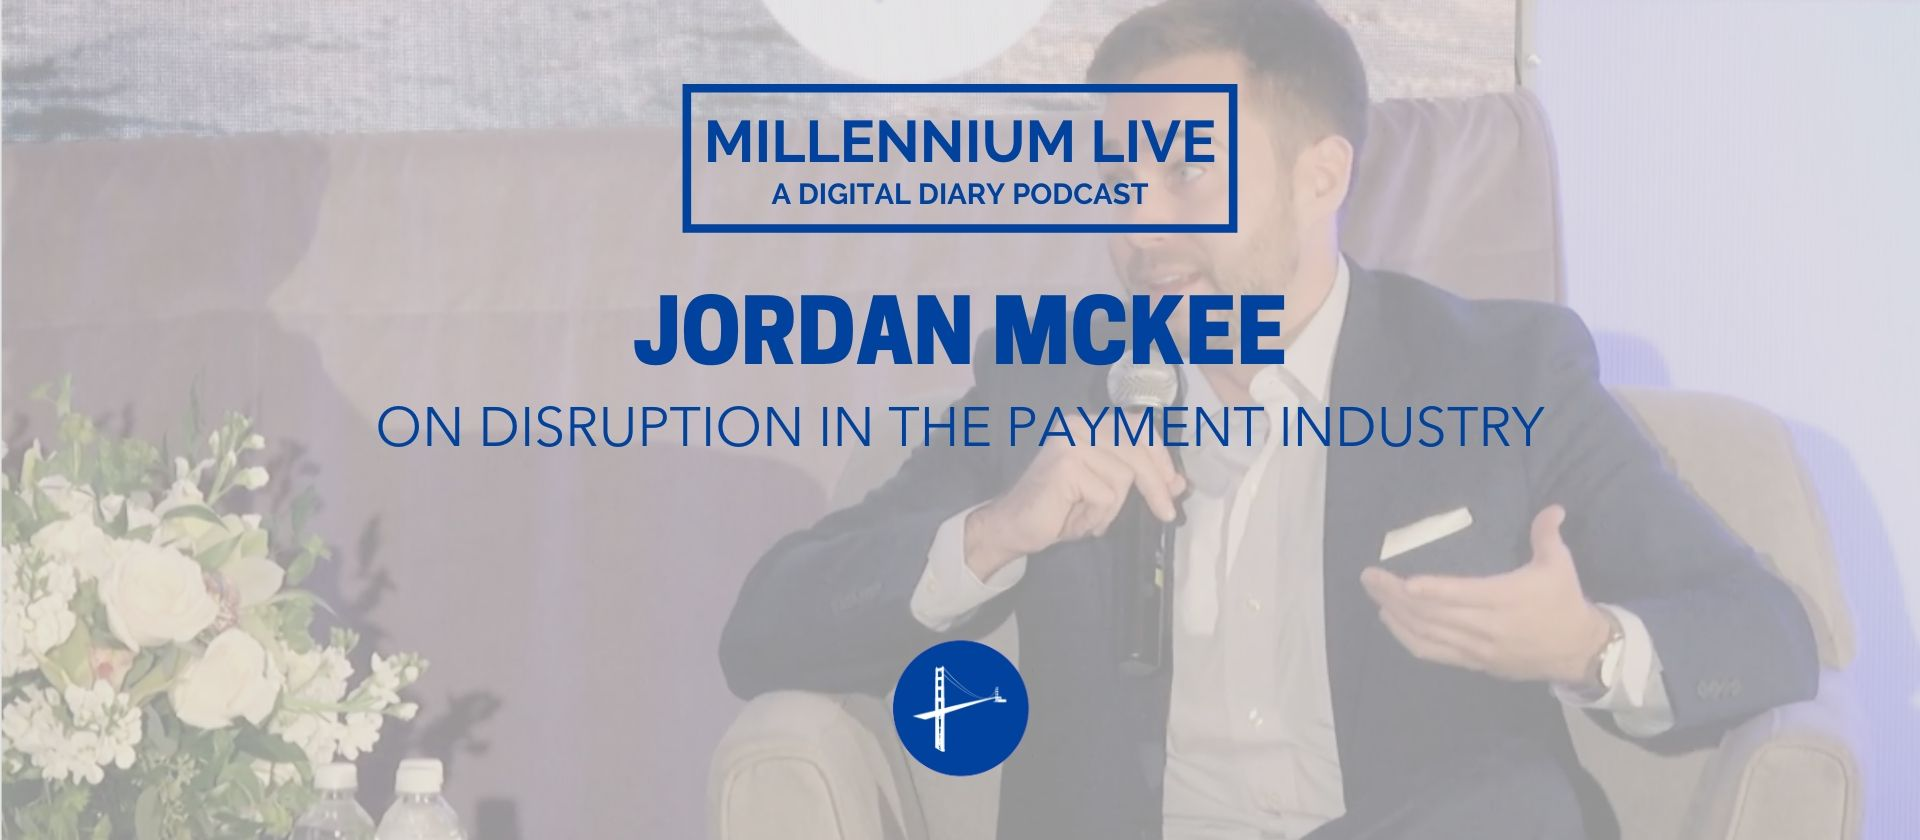 jordan mckee financial services podcast 451 research